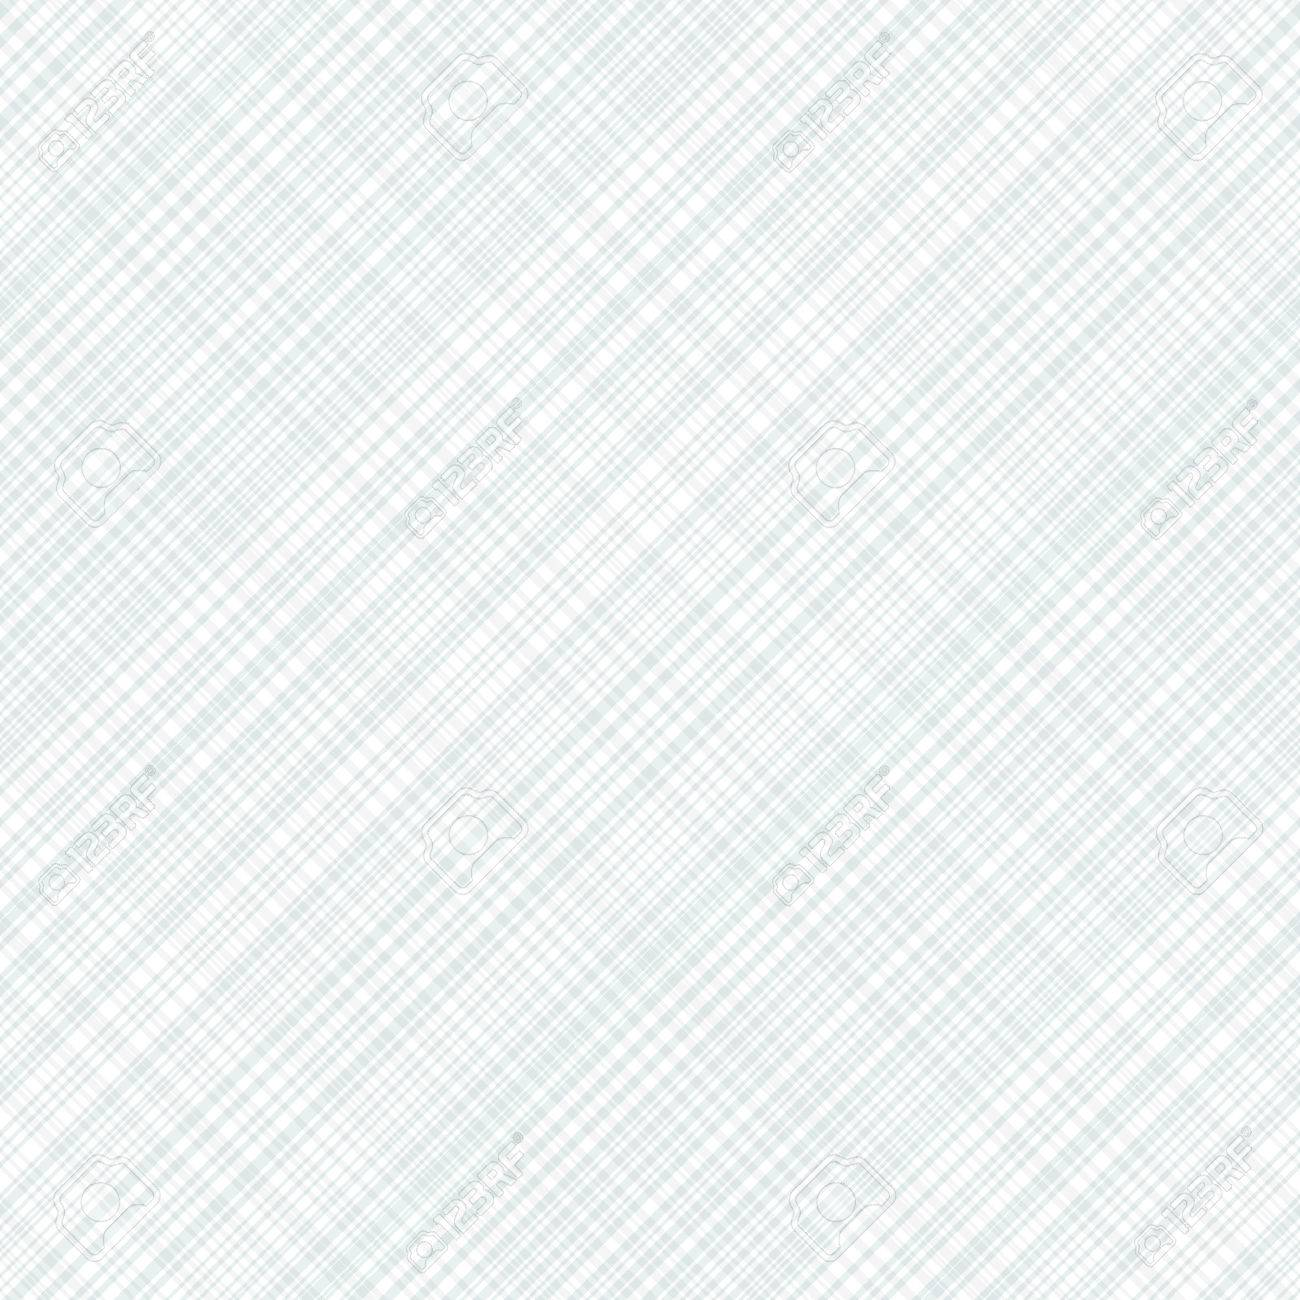 Line Seamless Pattern Can Be Used For Website Background And Royalty Free Cliparts Vectors And Stock Illustration Image 29730010 These patterns can be easily used as website background using css and html. line seamless pattern can be used for website background and